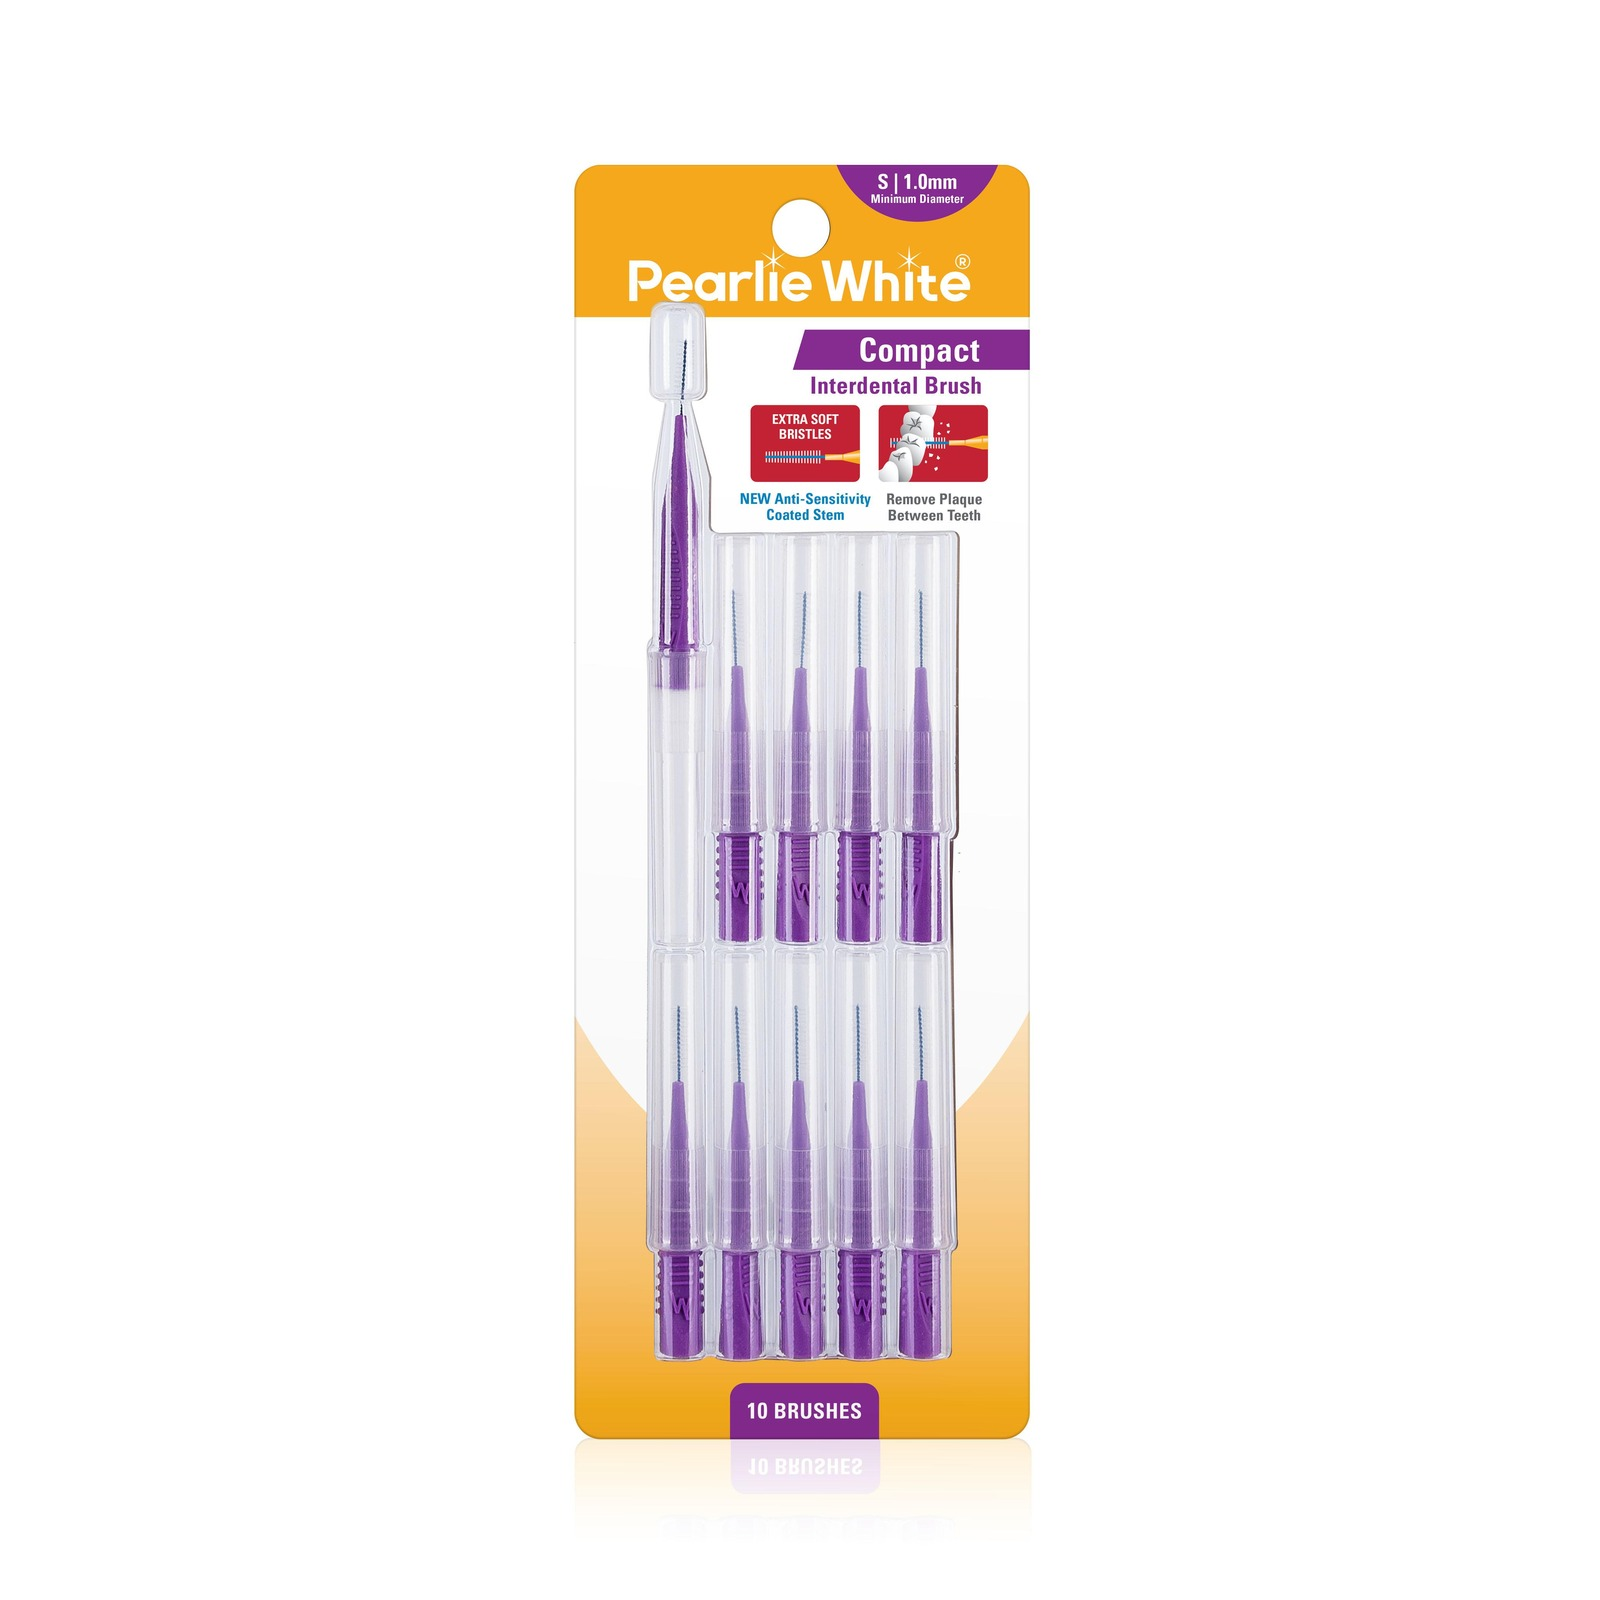 Pearlie White Compact Interdental Brushes S 1.0mm